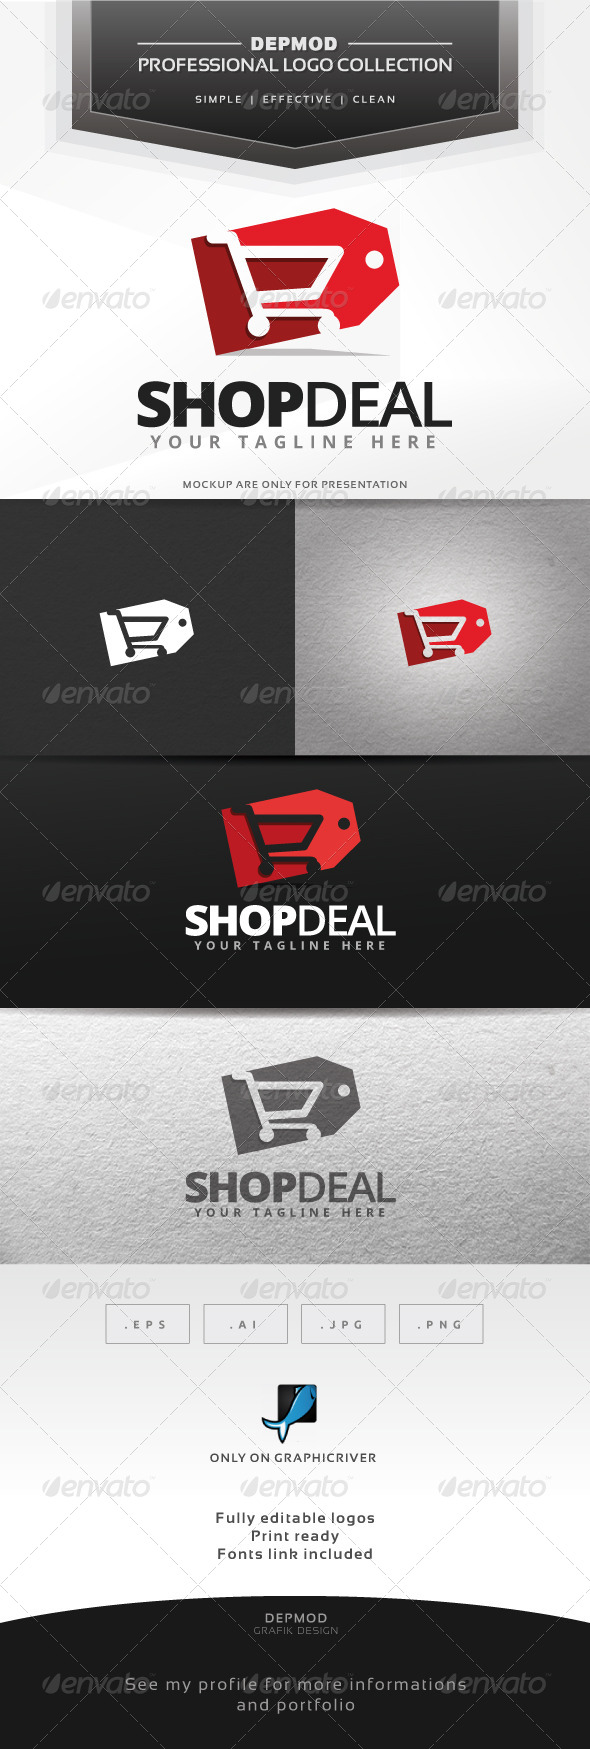 GraphicRiver Shop Deal Logo 7013224